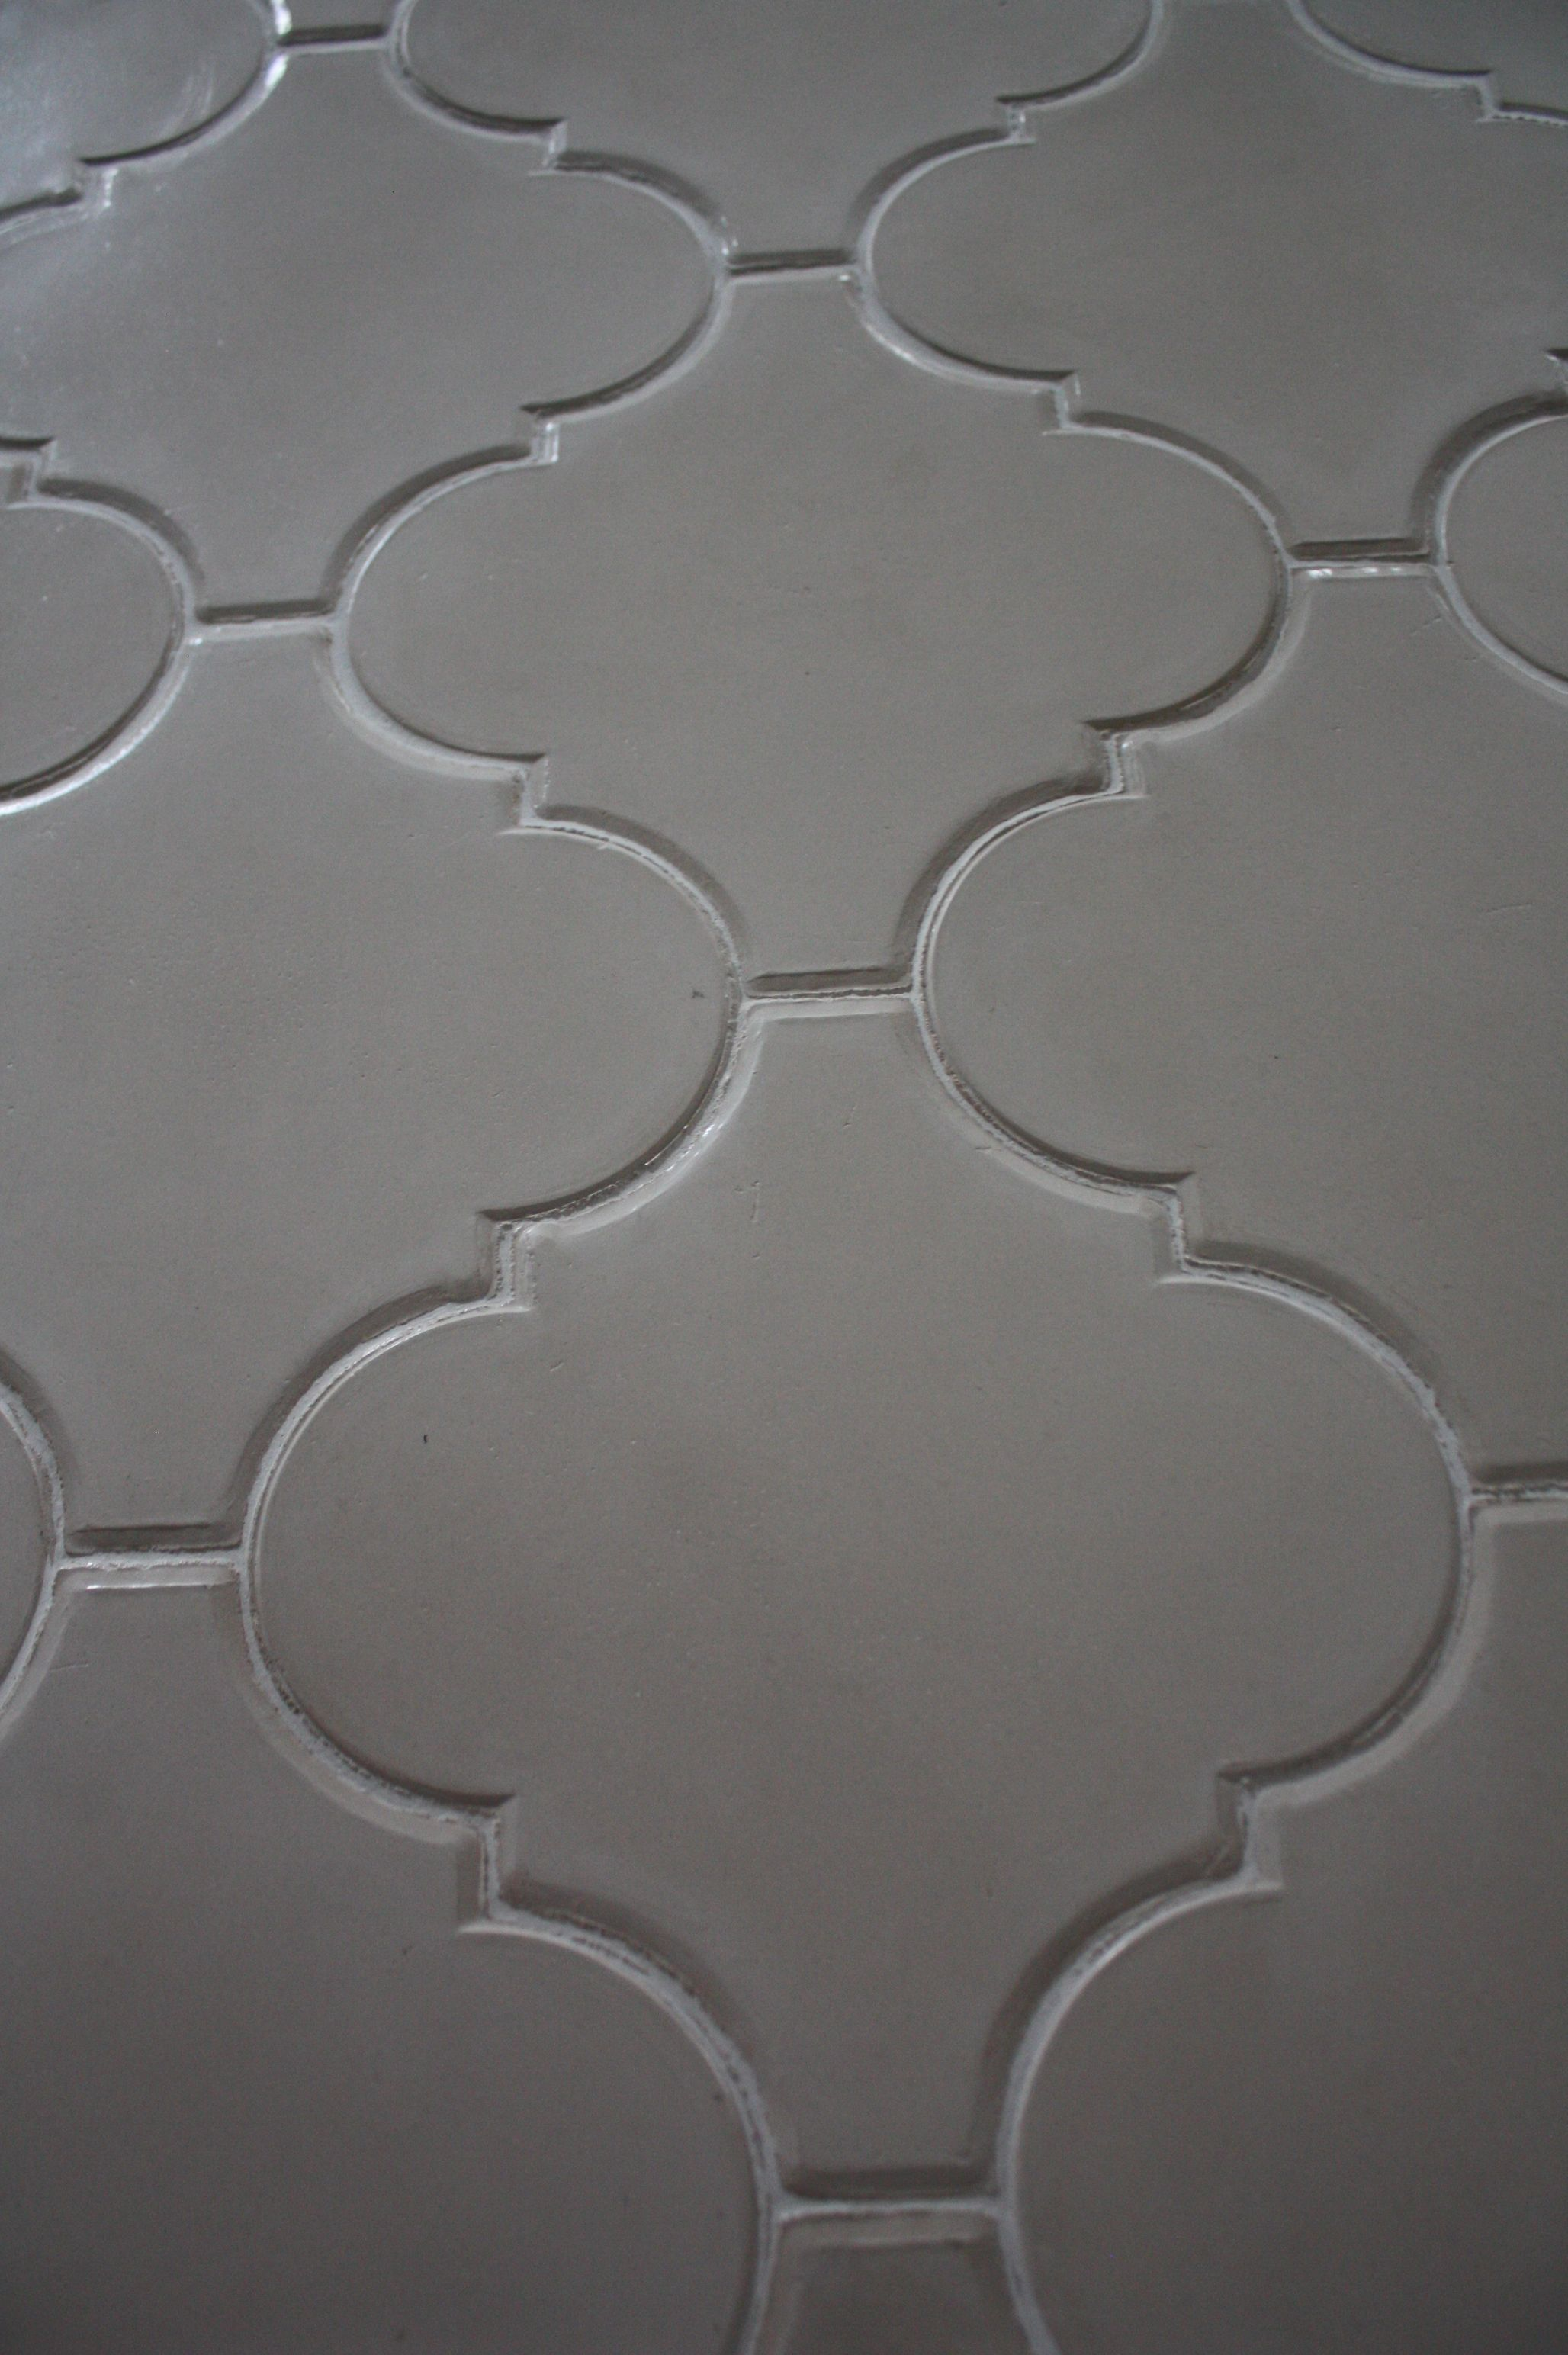 Large Arabesque Cement Floor Tile In Antique White By Presidio Tile Arabesque Tile Floor Arabesque Tile Tiles